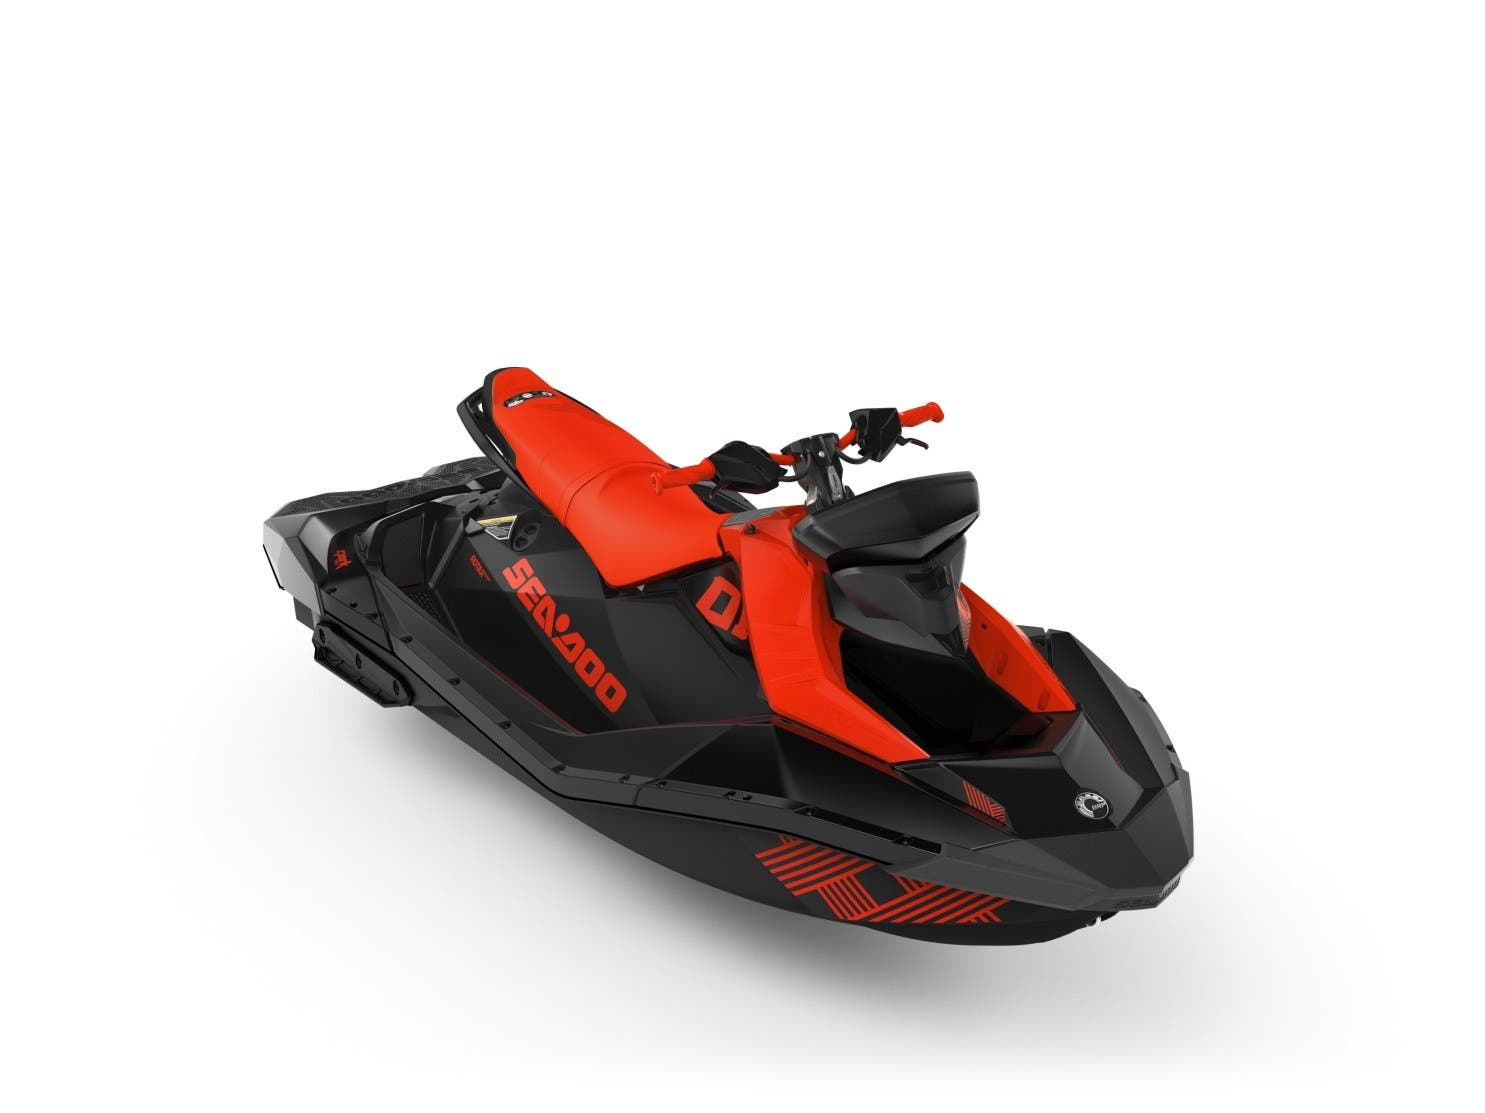 2021 Sea Doo PWC boat for sale, model of the boat is TRIXX 3-Up SS & Image # 4 of 4